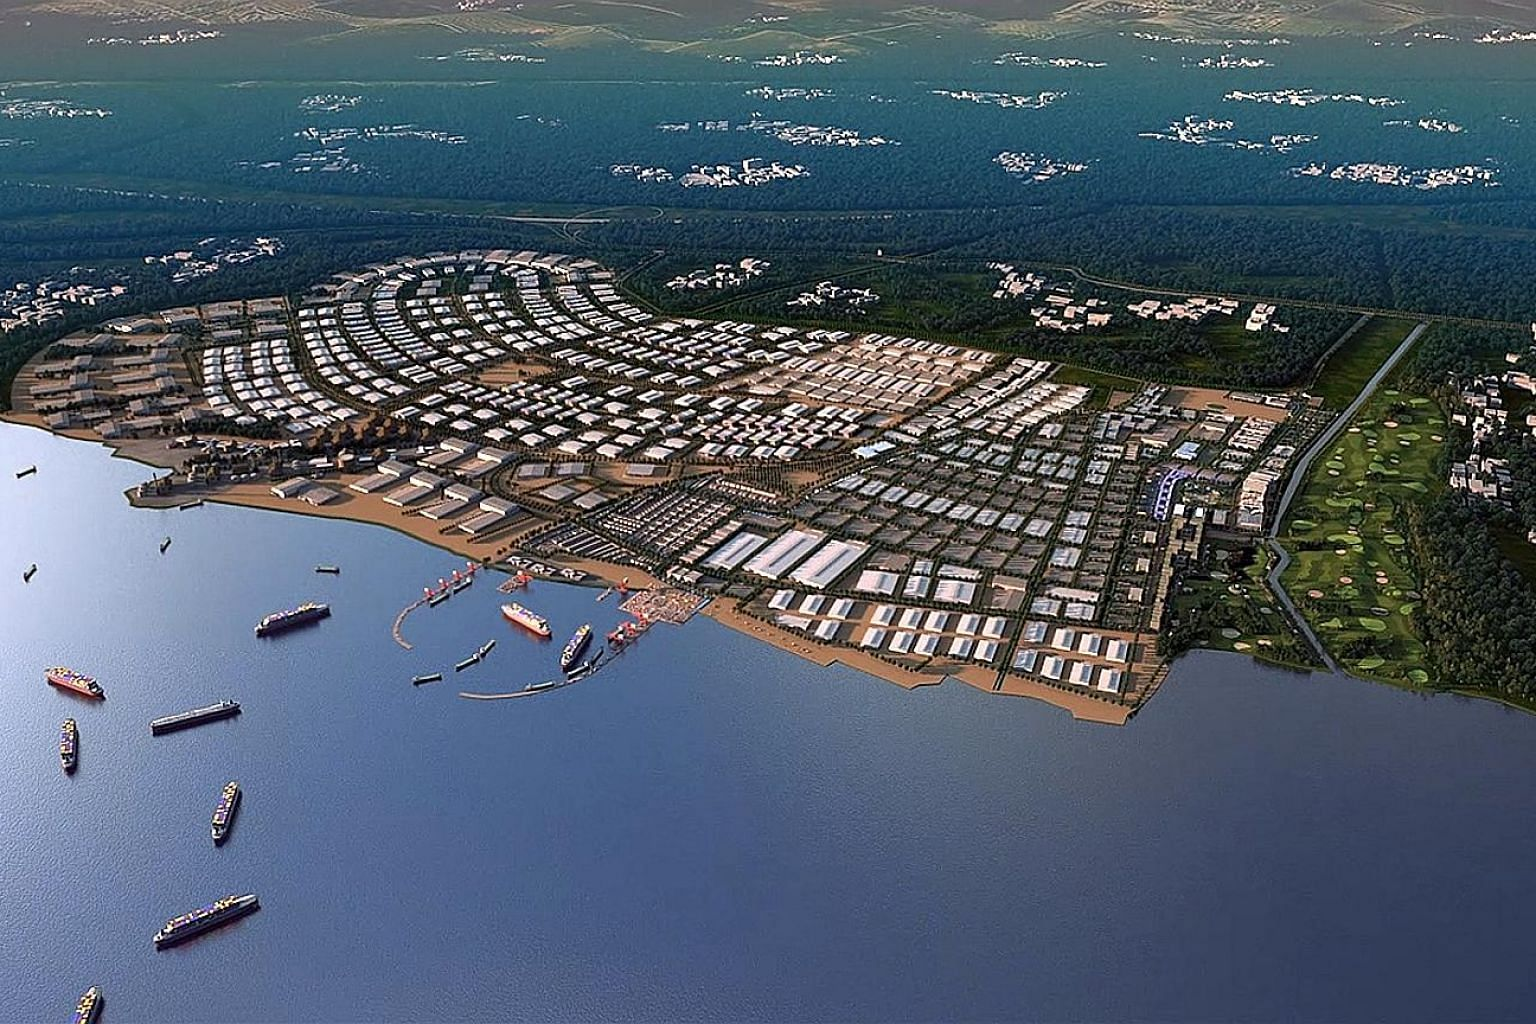 Kendal Industrial Park in Central Java is expected to generate around 100,000 jobs when the first phase of the project is complete in 2021, according to Sembcorp. Located less than an hour's drive from the provincial capital Semarang, the industrial